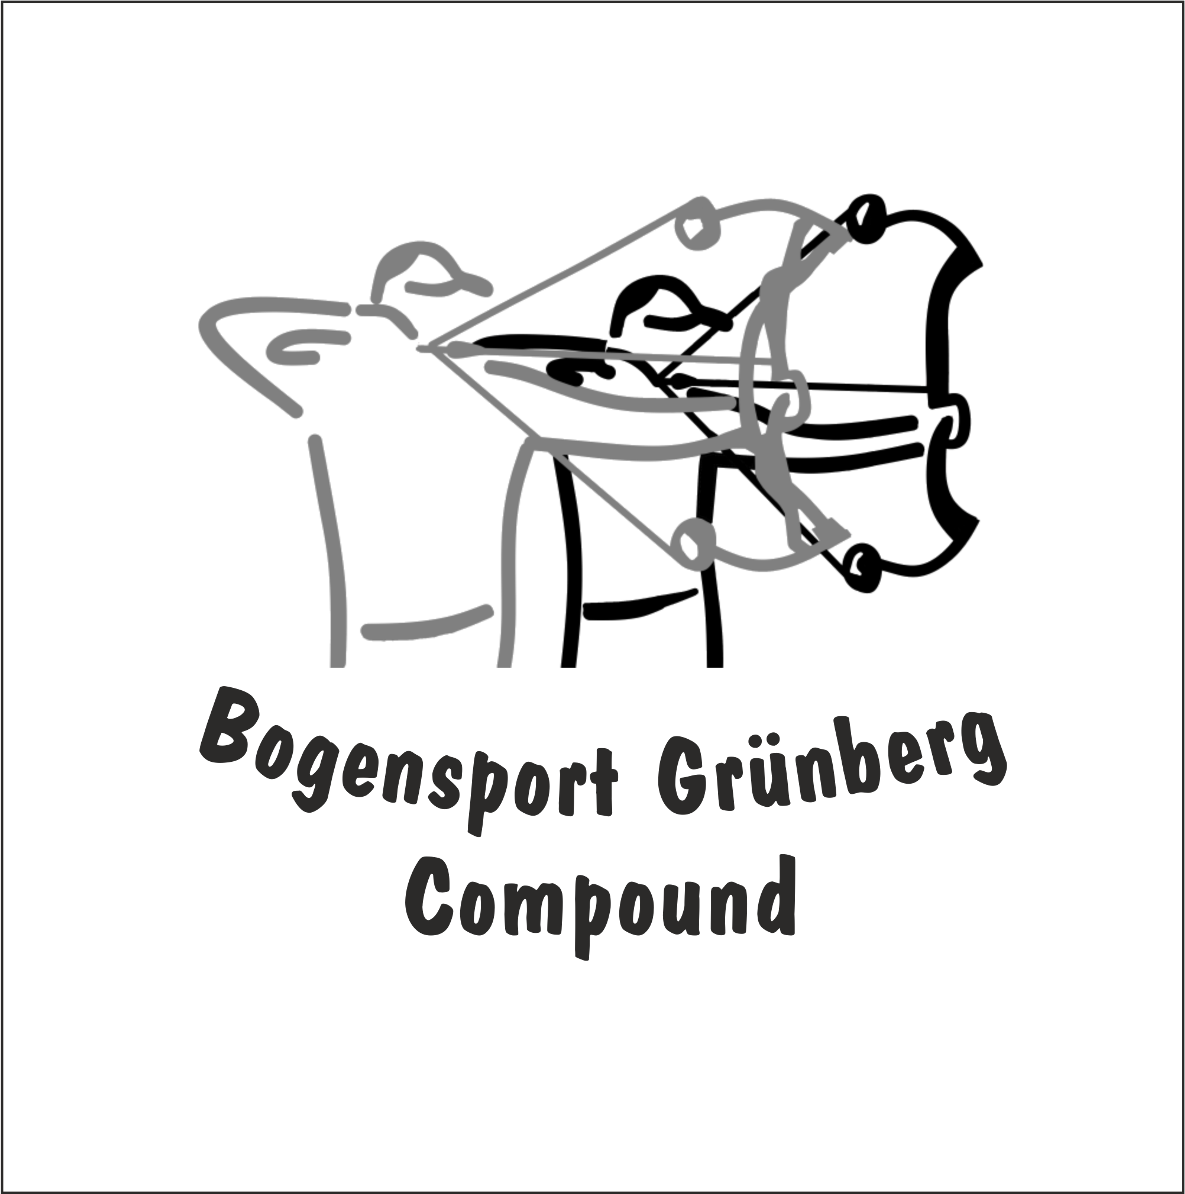 Bogensport Grünberg Compound